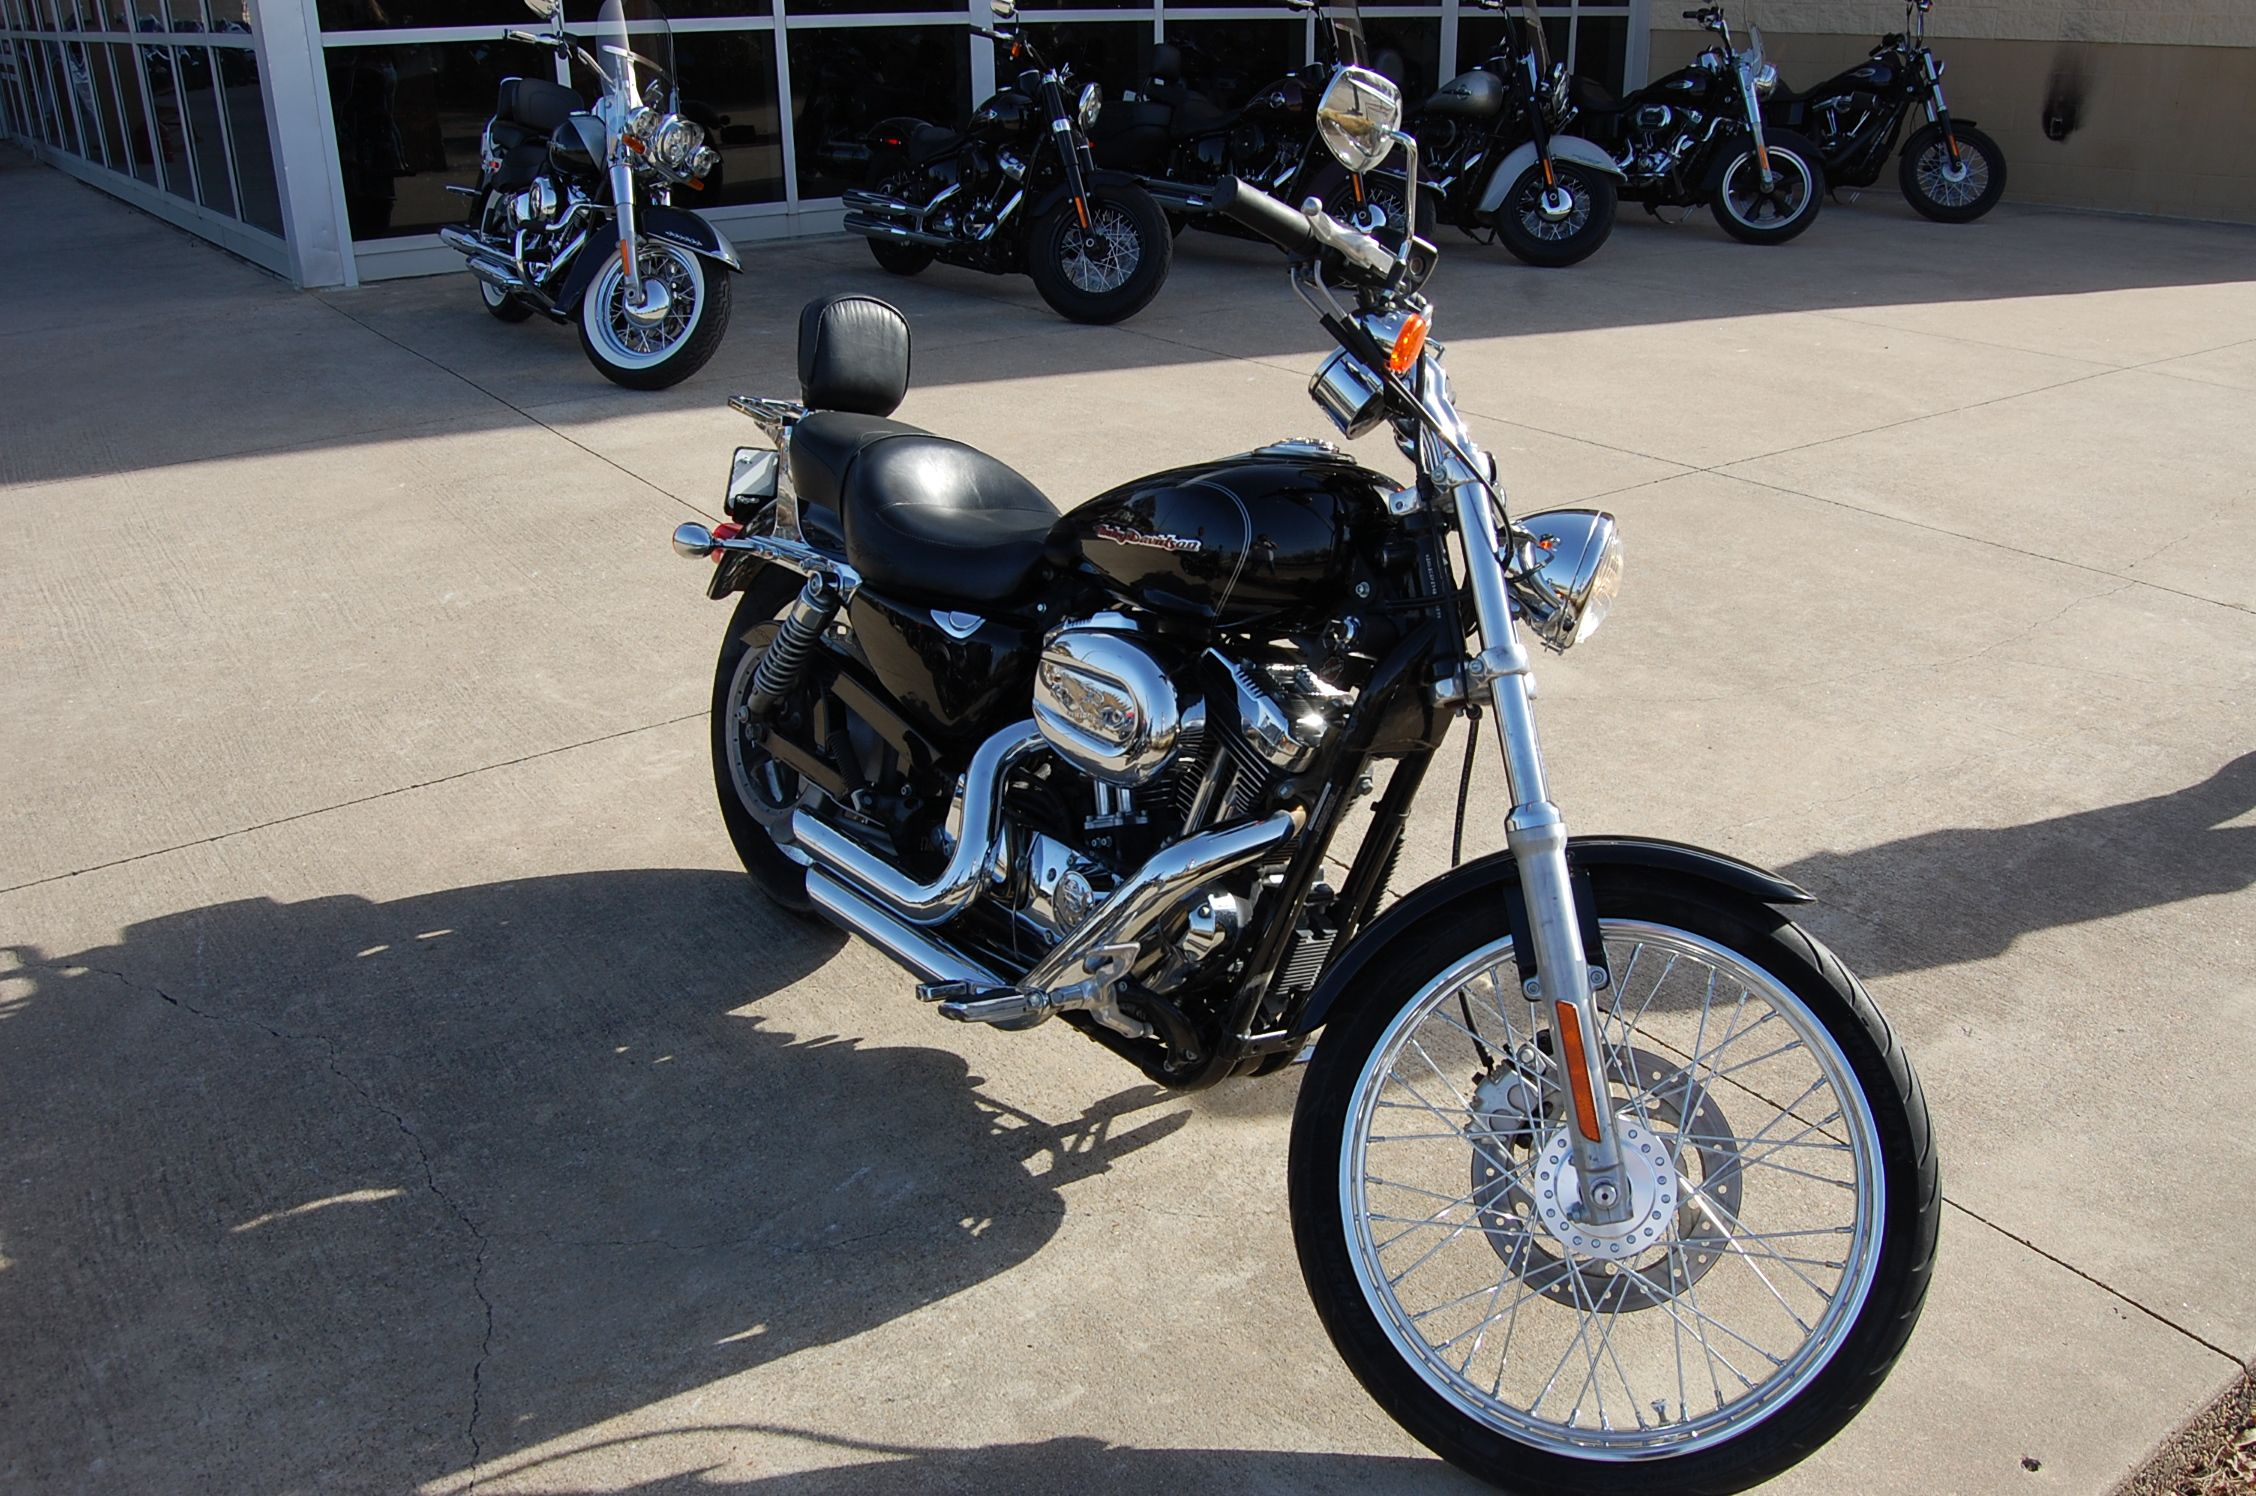 Pre Owned Motorcycles For Sale In Austin Tx